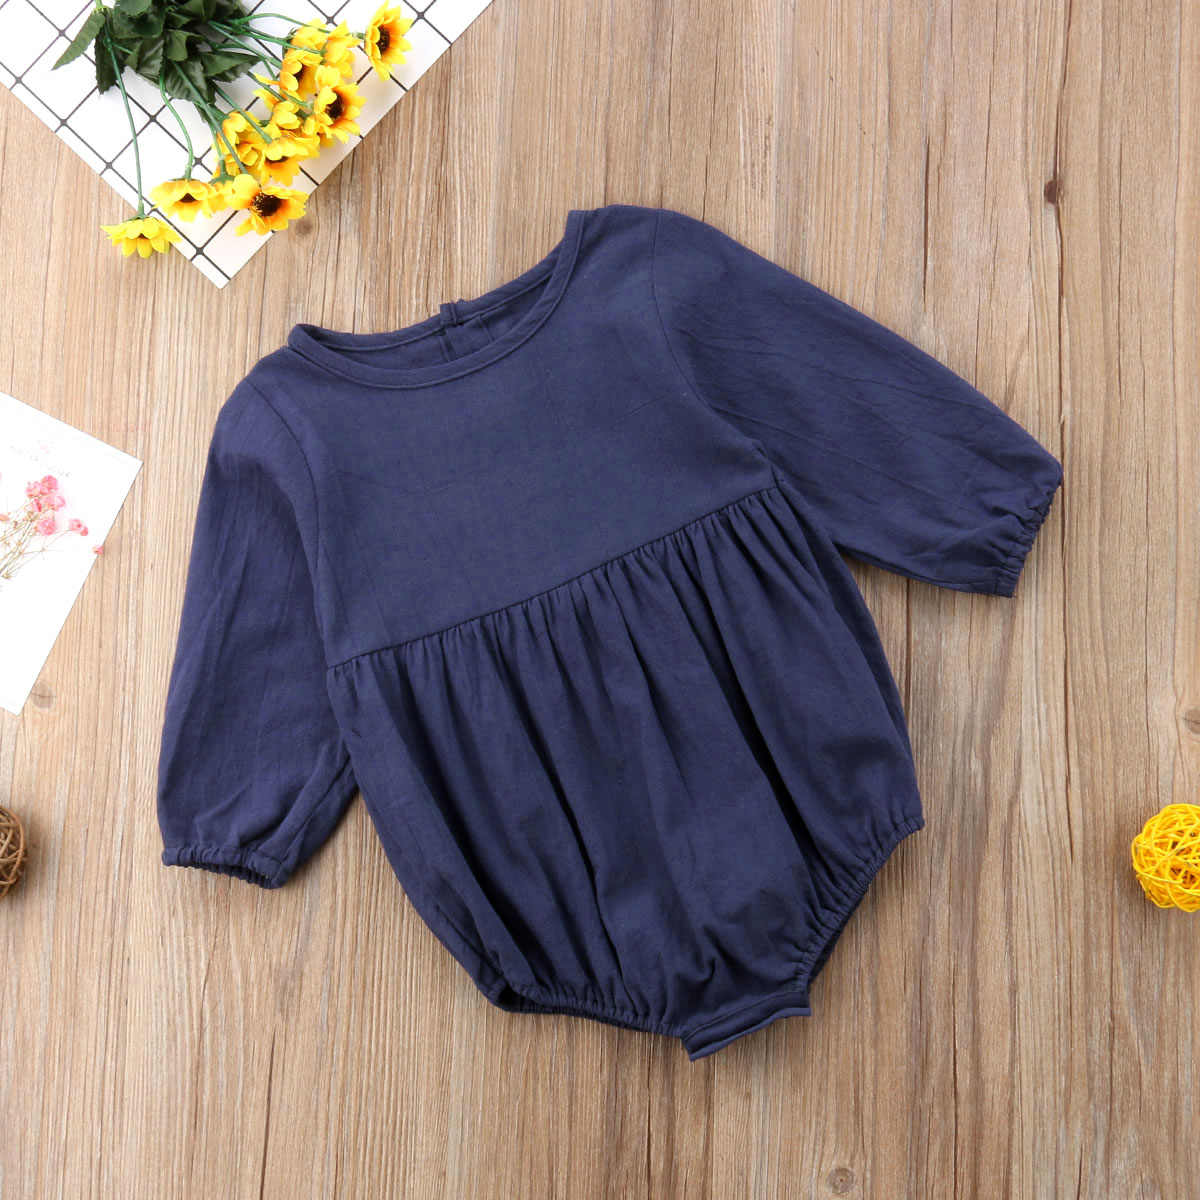 9234f9de419 ... Vintage Newborn Infant Baby Girl Rompers Solid Blue Long Sleeve  Jumpsuit Playsuit For Baby Girl Autumn ...